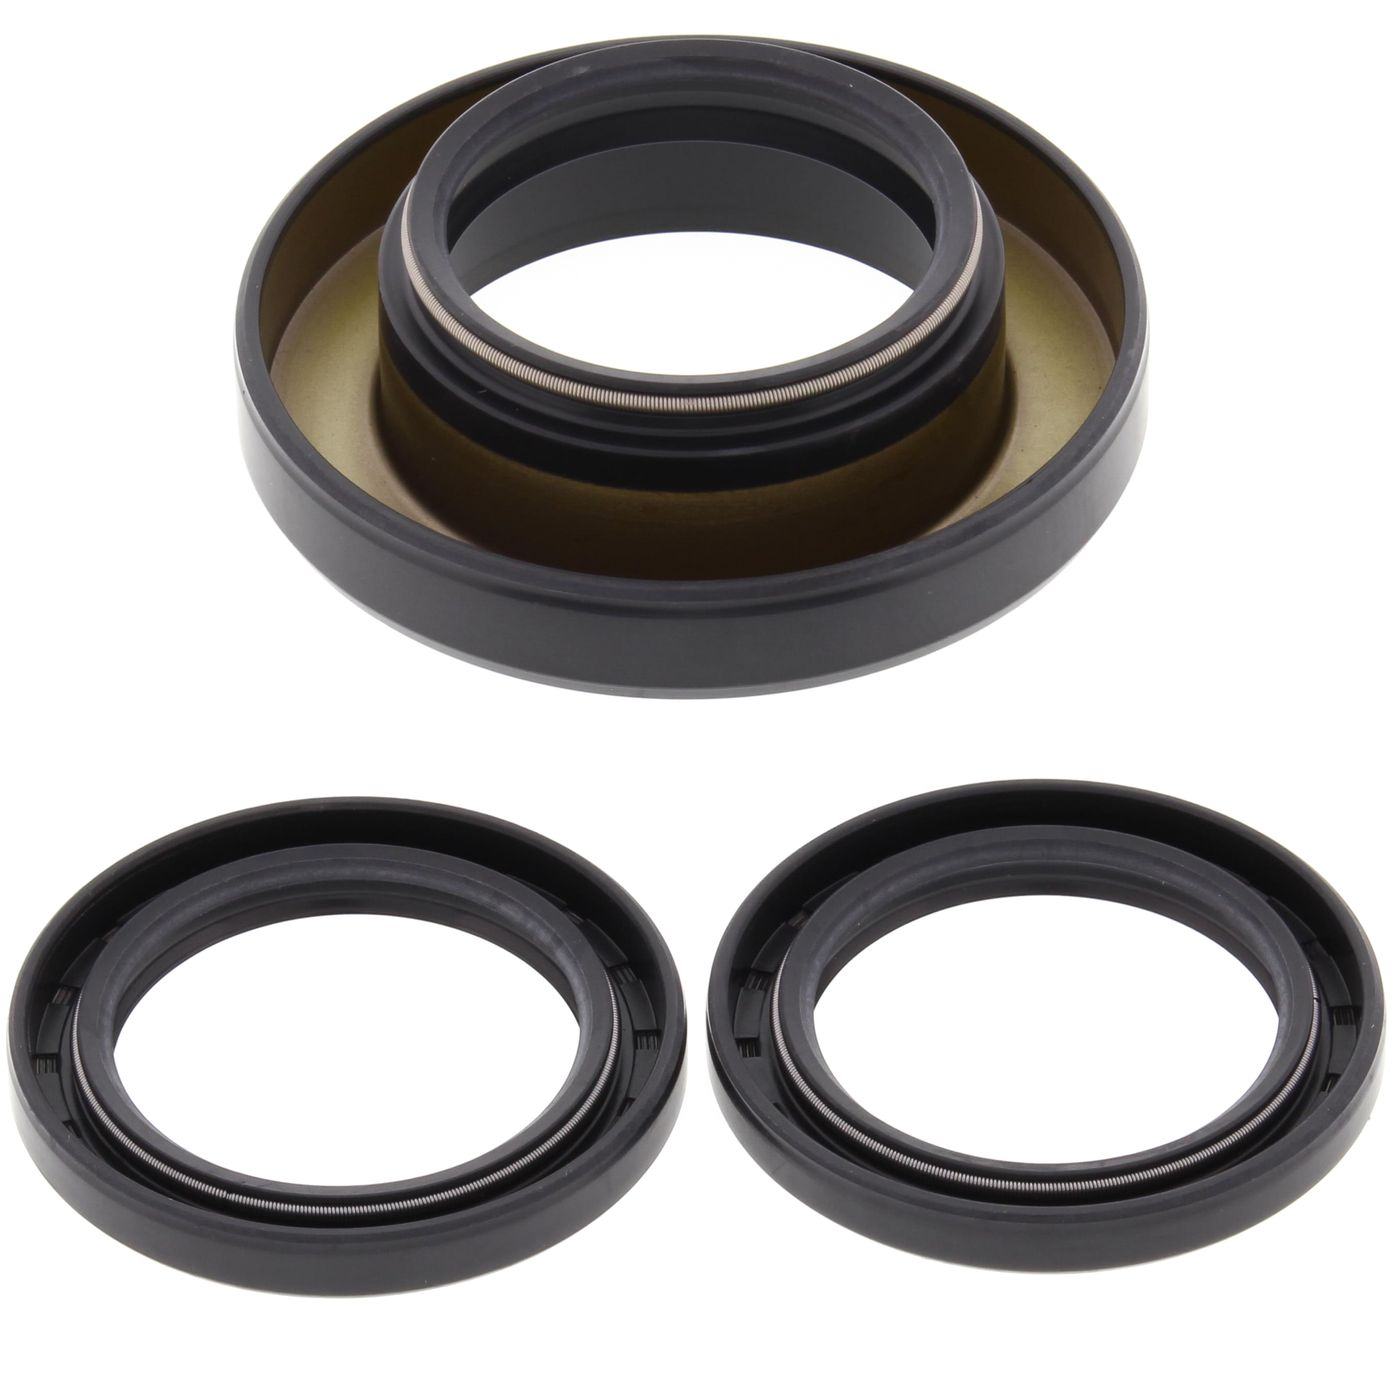 Wrp Diff Seal Kits - WRP252061-5 image